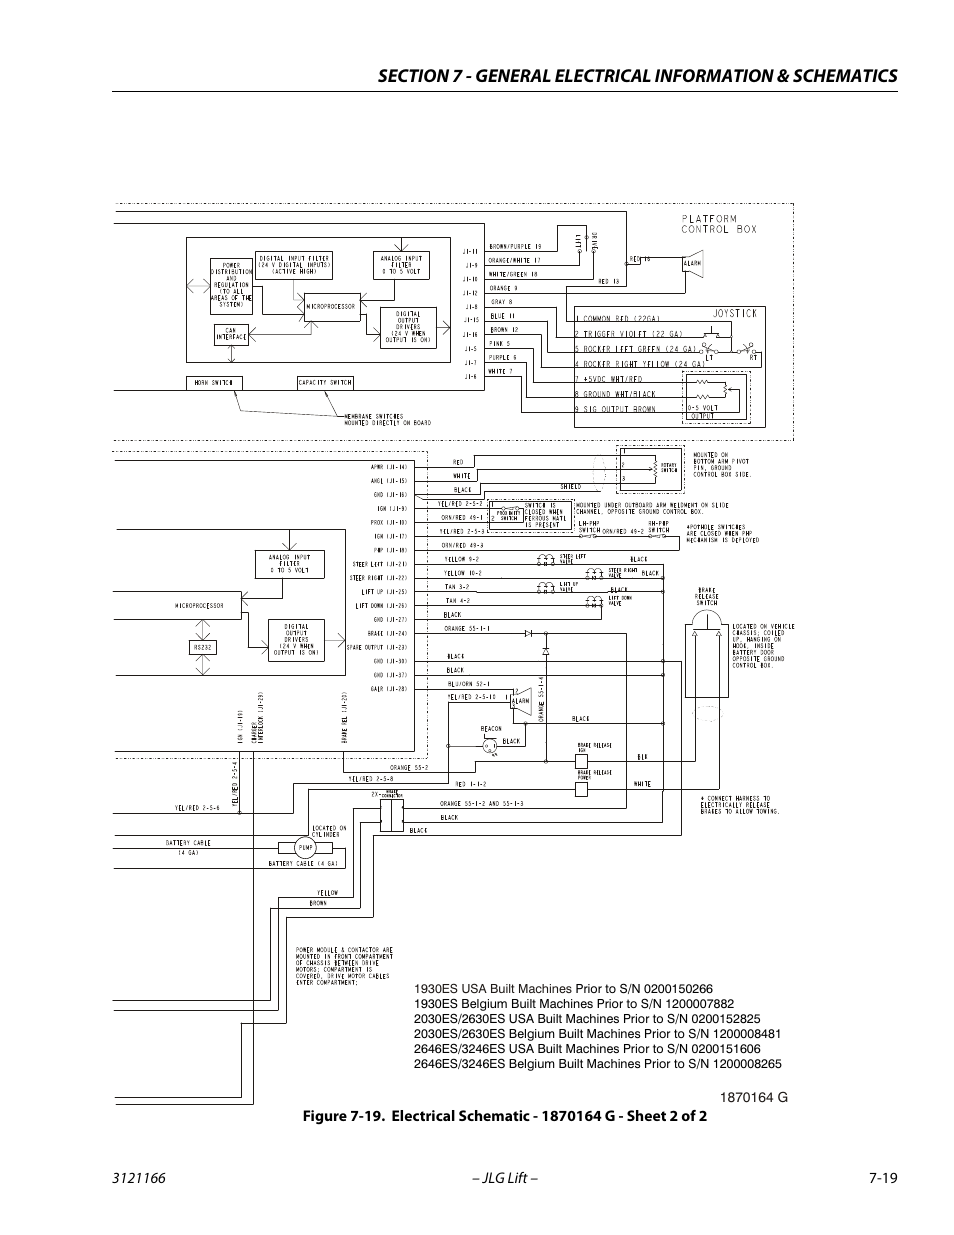 Jlg 3246 Wiring Diagram Worksheet And Lull Diagrams Electrical Schematic 1870164g Sheet 2 Of 3246es Service Rh Manualsdir Com 7 Pin Trailer